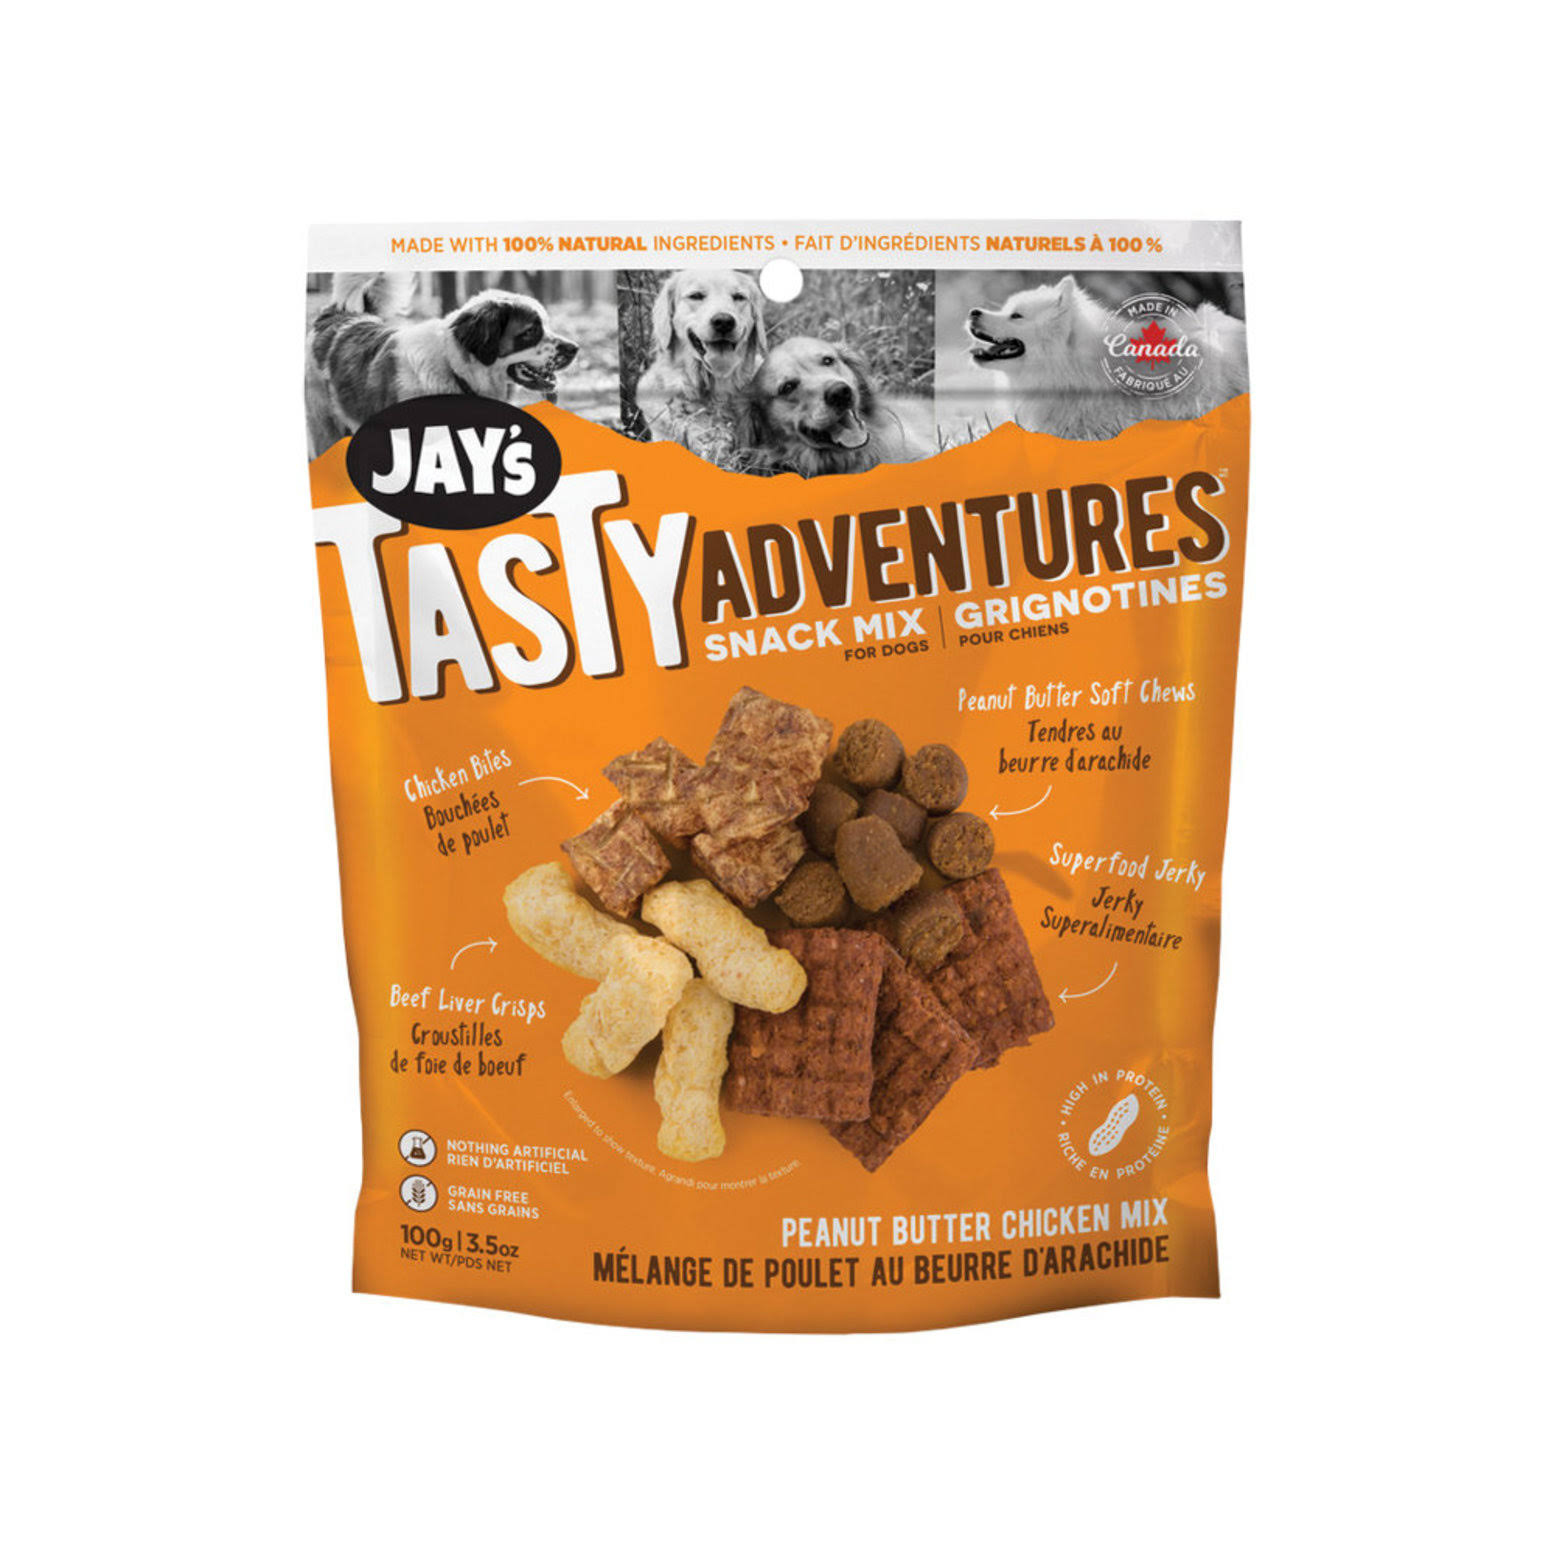 Jay's Tasty Adventures Peanut Butter Chicken Mix 07 oz.